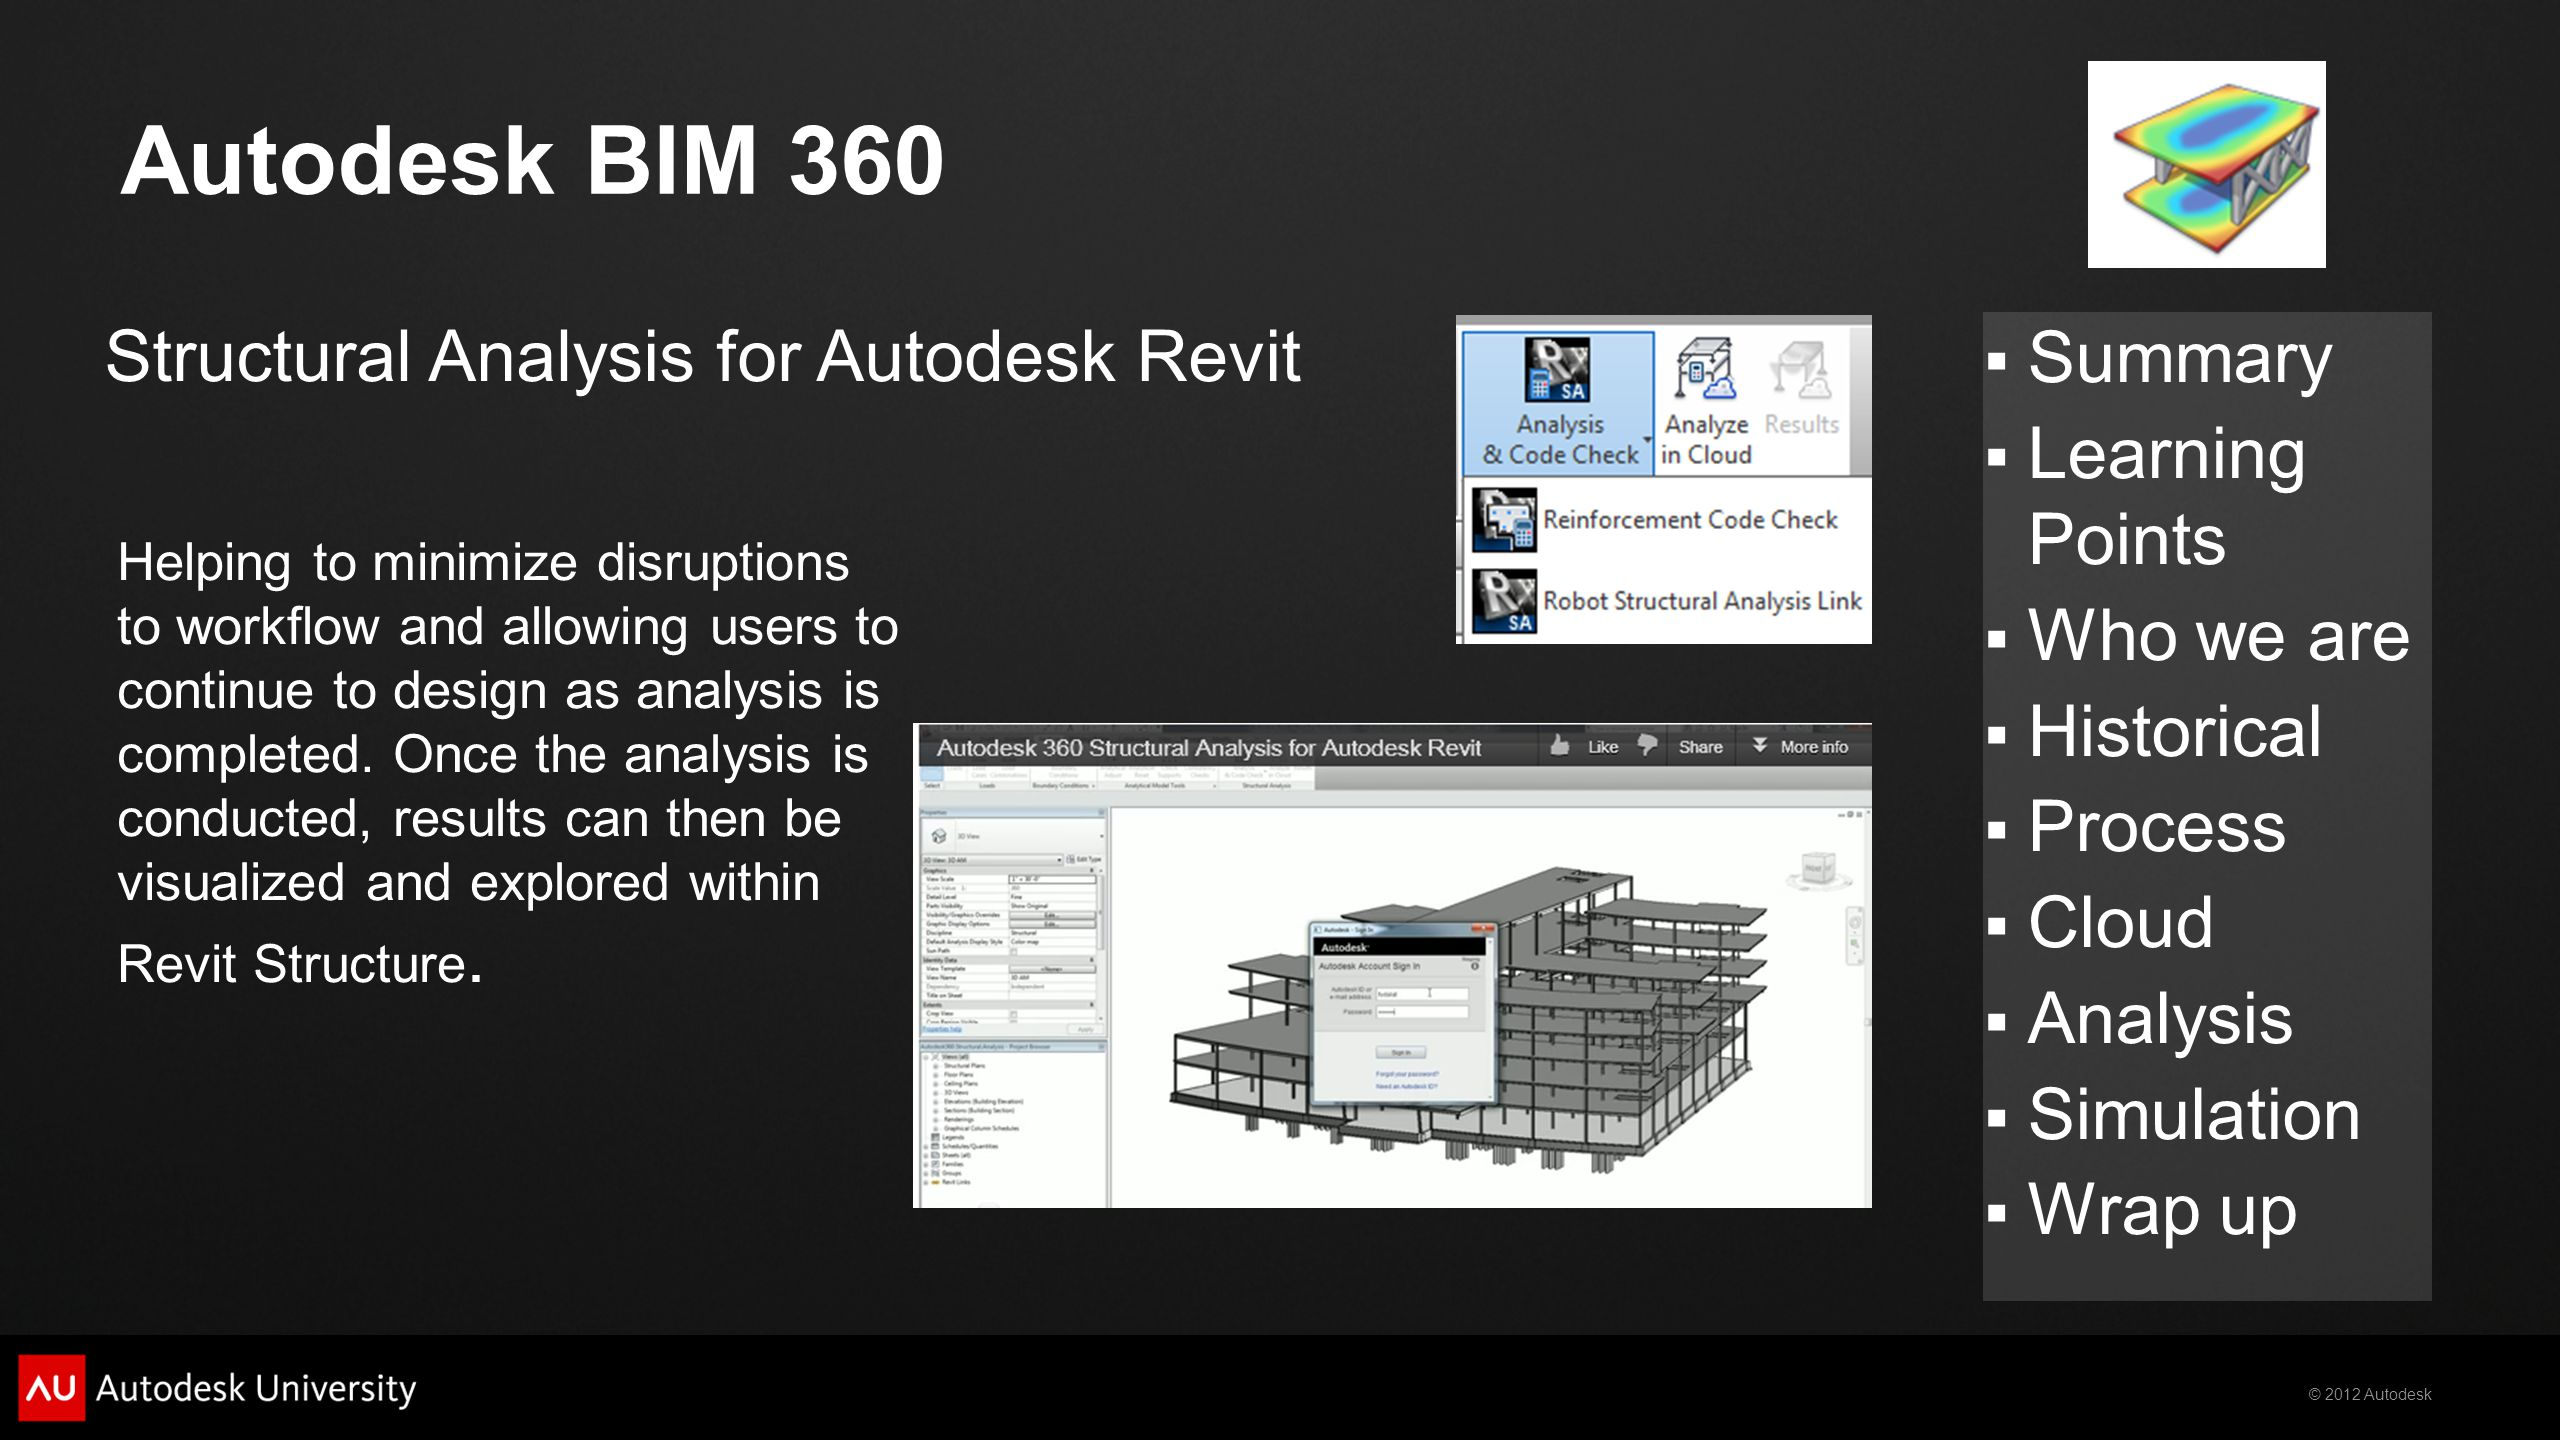 © 2012 Autodesk  Summary  Learning Points  Who we are  Historical  Process  Cloud  Analysis  Simulation  Wrap up Autodesk BIM 360 Helping to minimize disruptions to workflow and allowing users to continue to design as analysis is completed.